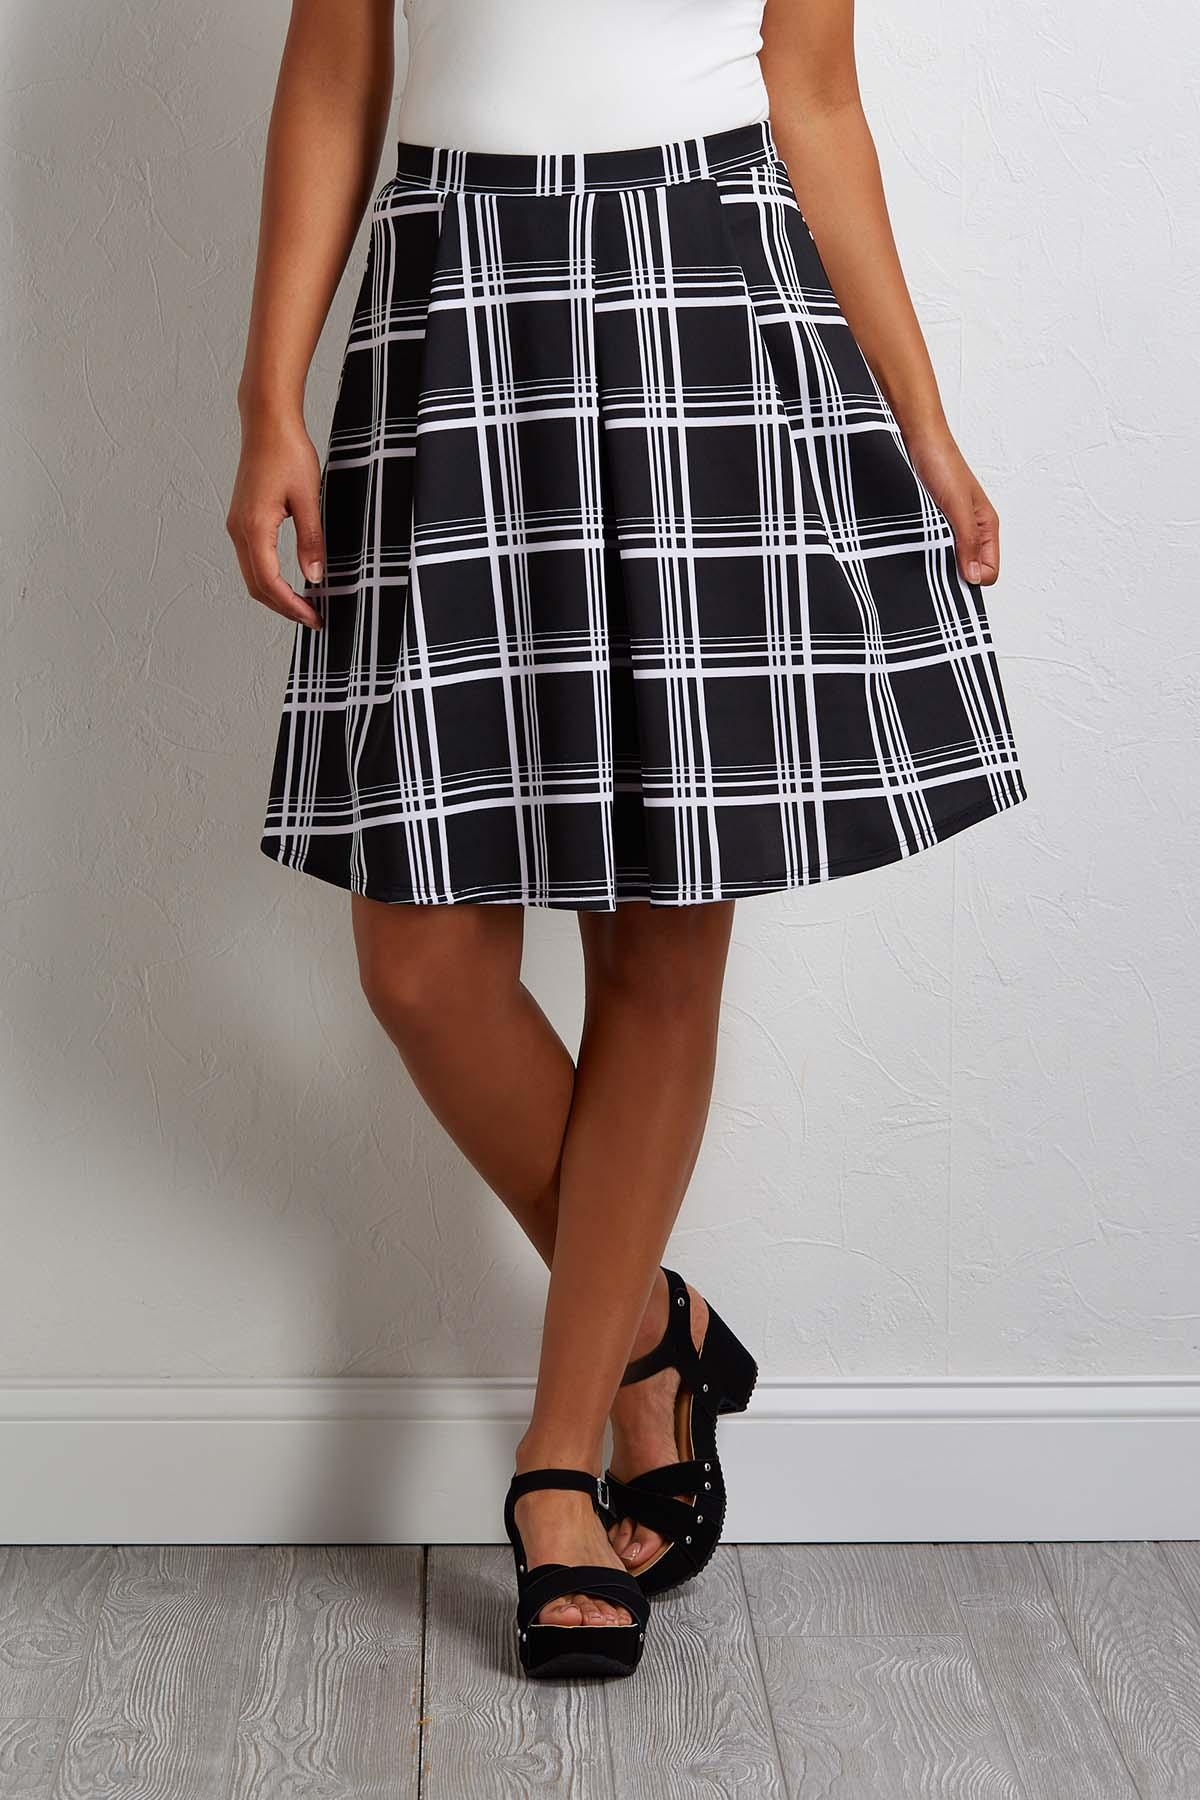 Hip To Be Square Skirt